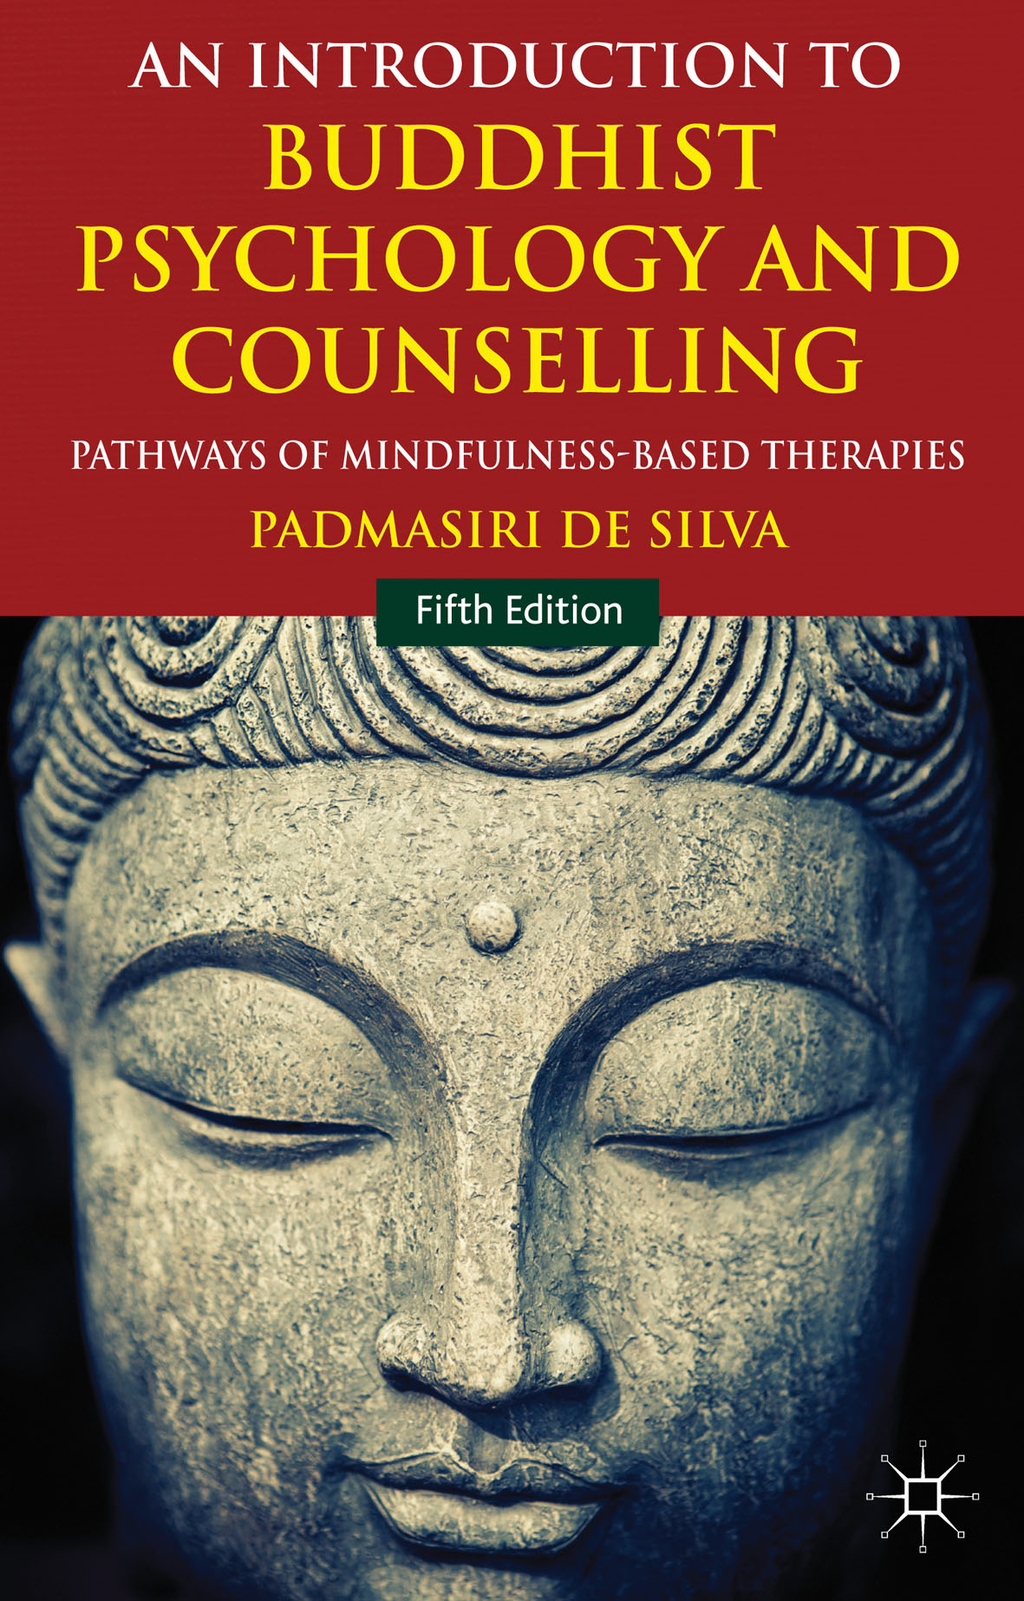 An Introduction to Buddhist Psychology and Counselling Pathways of Mindfulness-Based Therapies